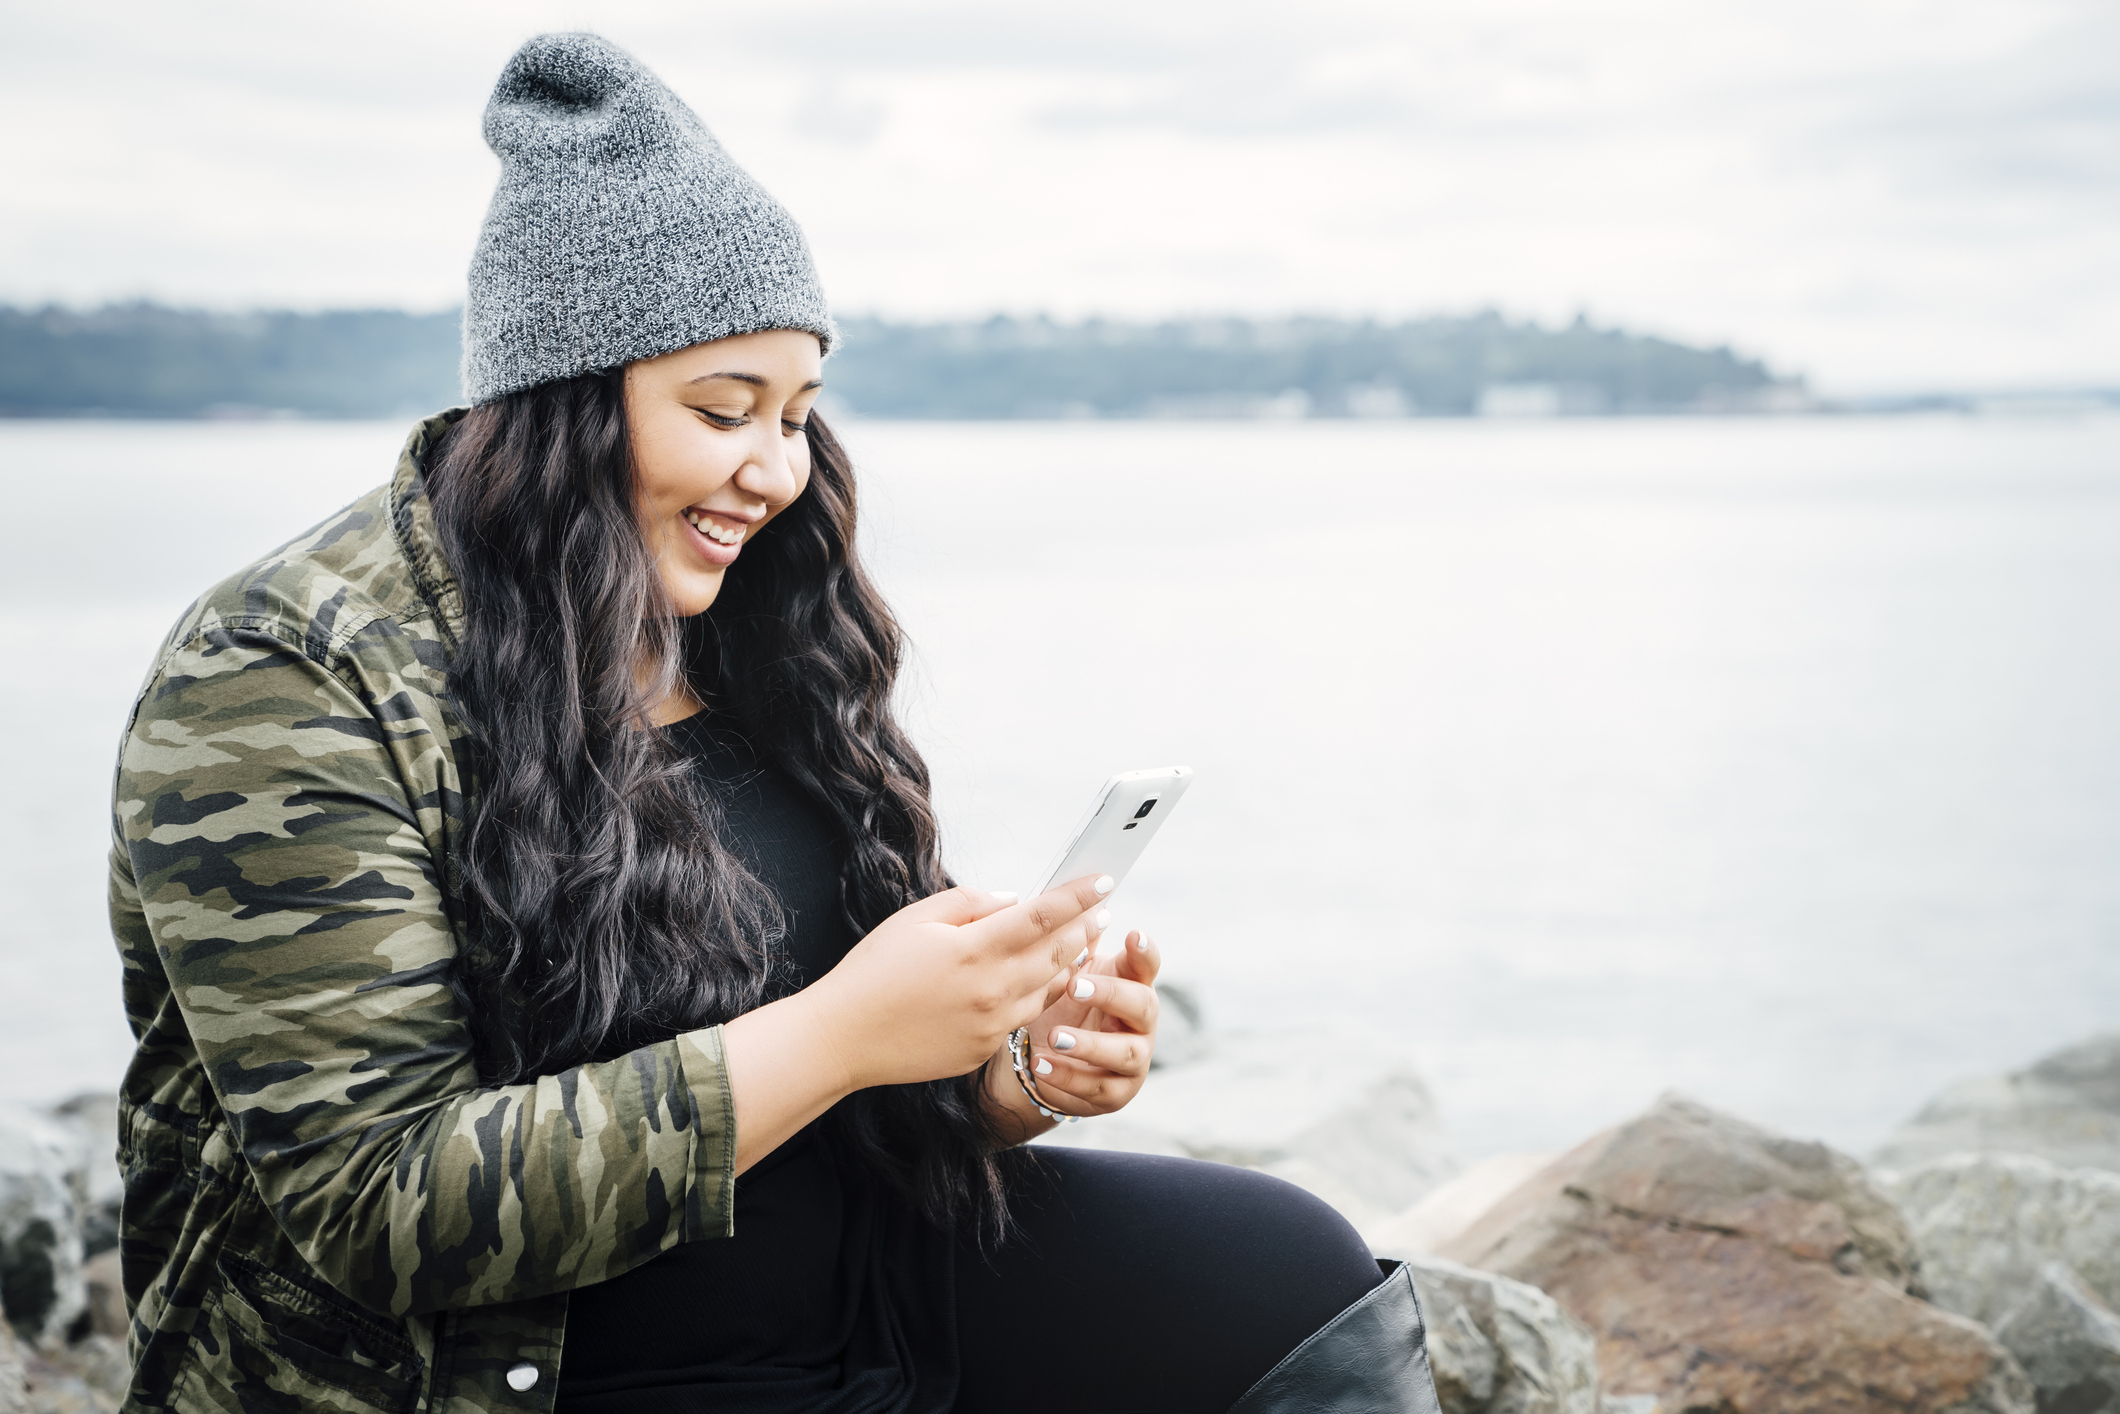 indigenous woman uses her phone. She smiles while sitting on the side of a lake.